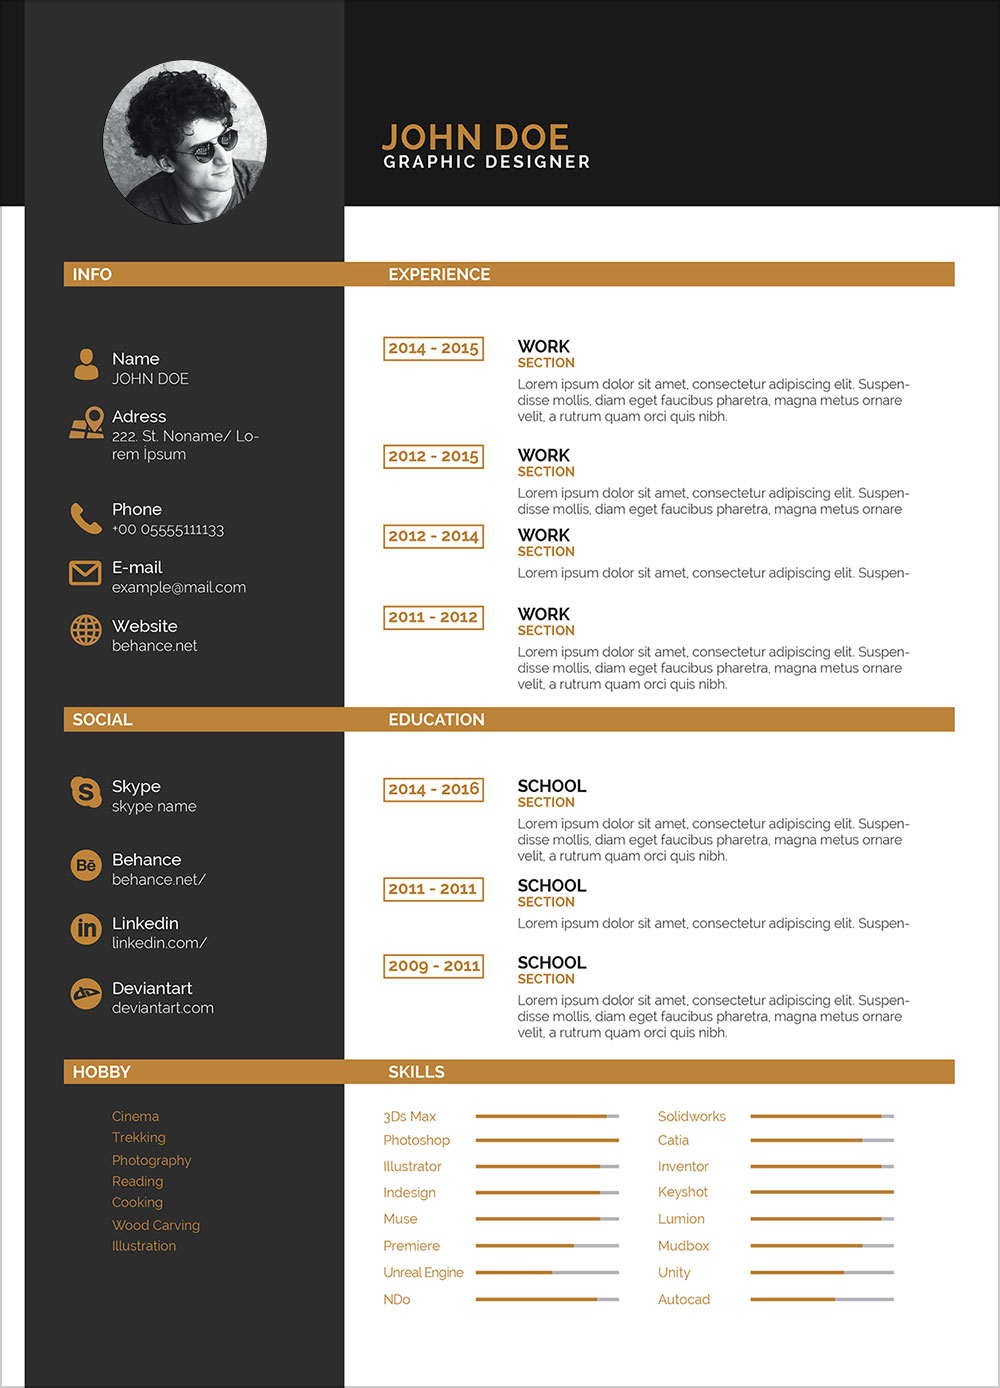 Free-Clean-Two-Color-Resume-Template-in-Indesign-INDD-Format-2